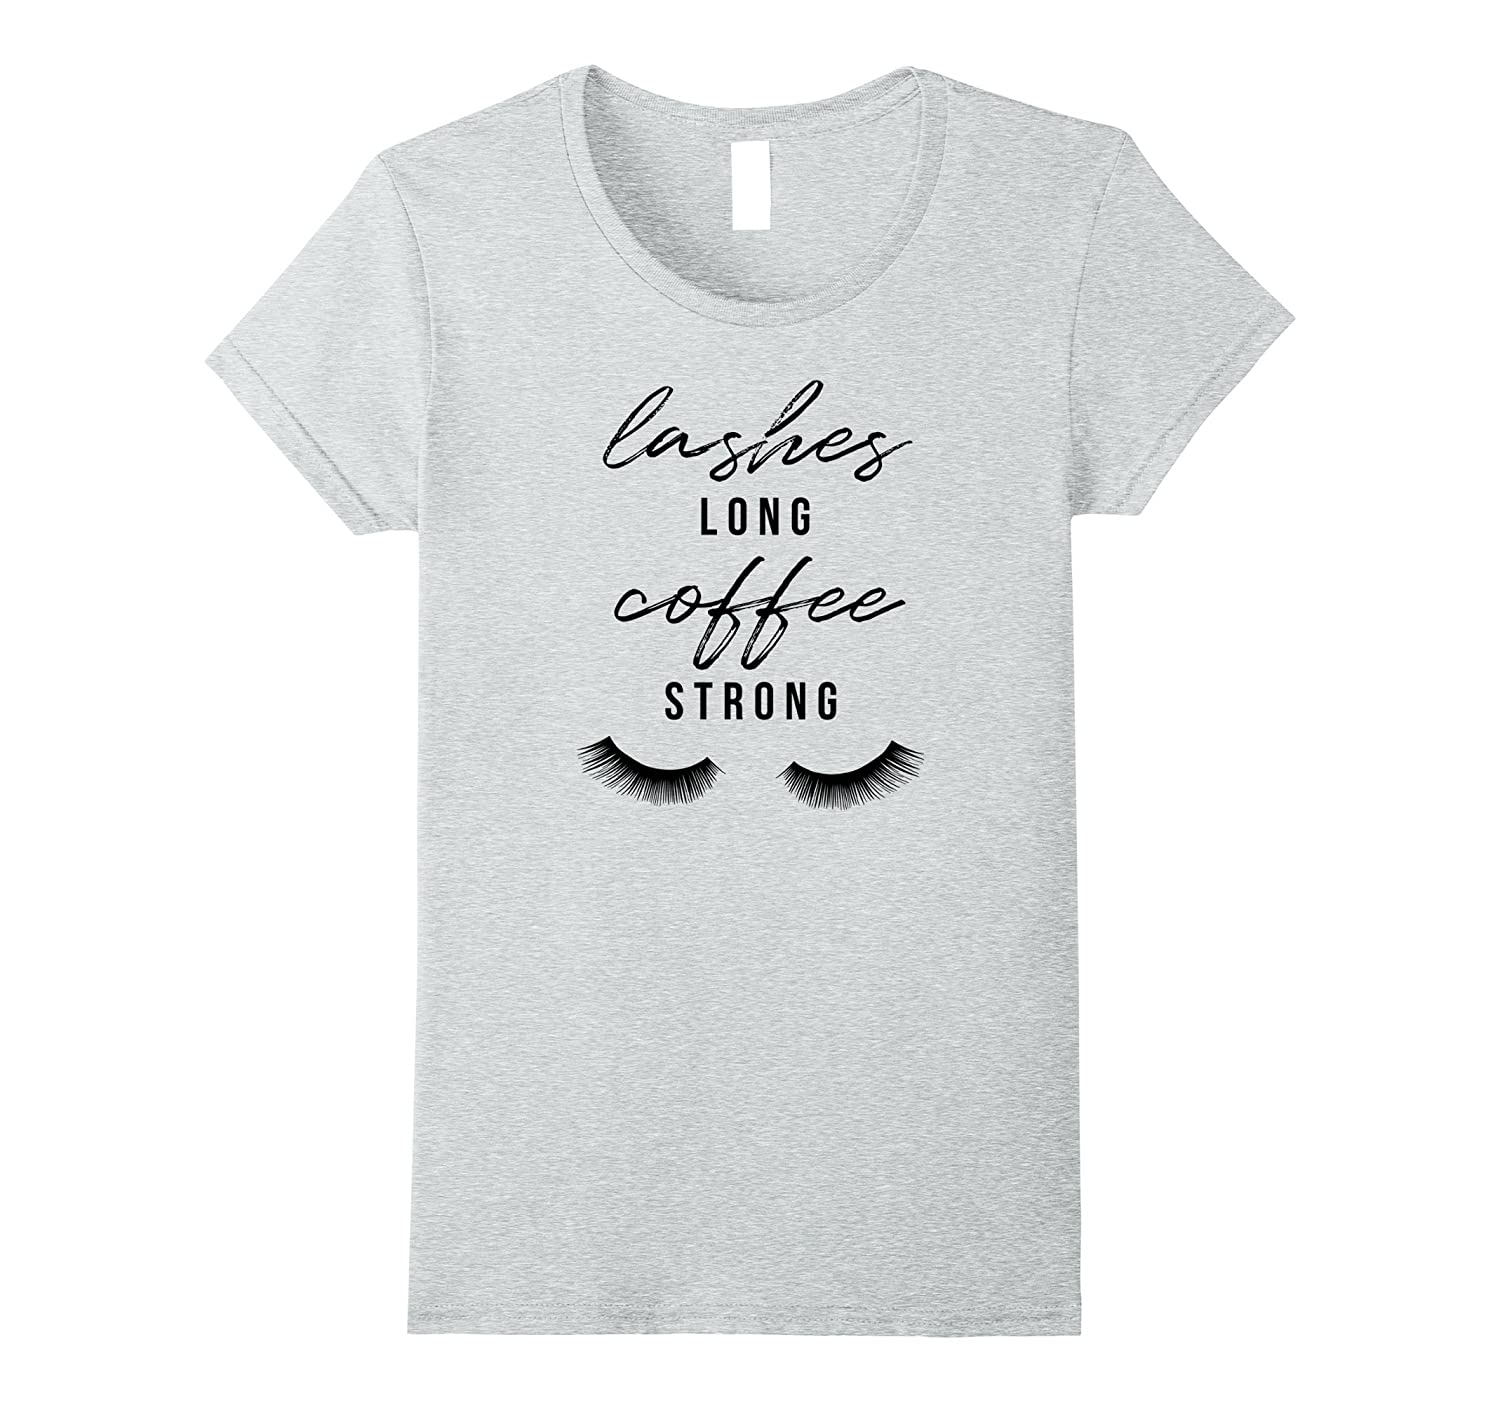 80b08757532 Womens Lashes Long Coffee Strong Casual Tops for Women Cute t shirt ...